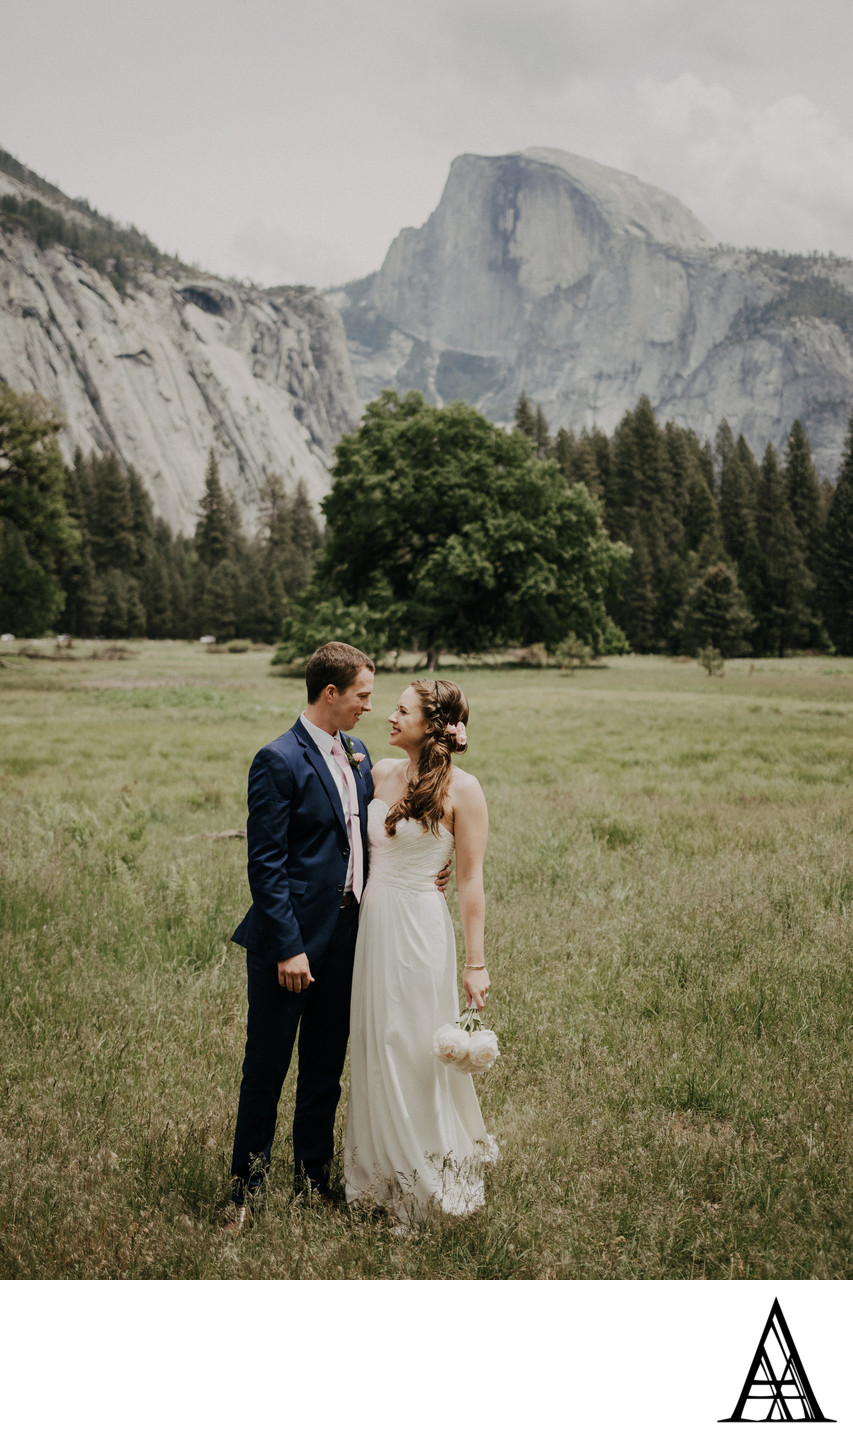 Wedding Photographer Packages Sacramento